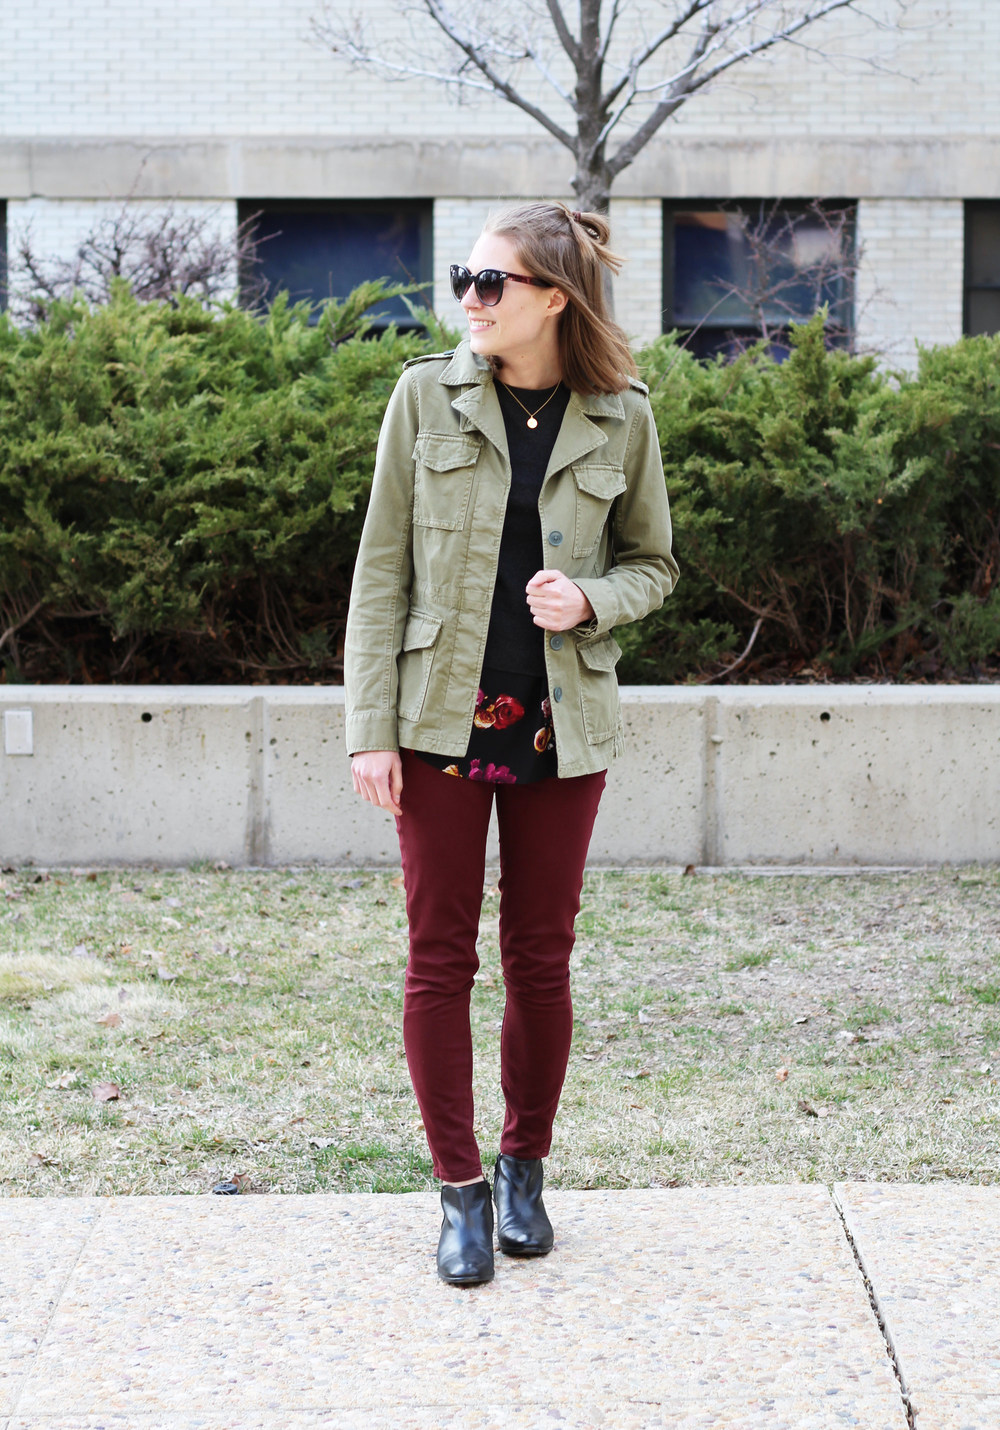 Green Jacket Black Pants